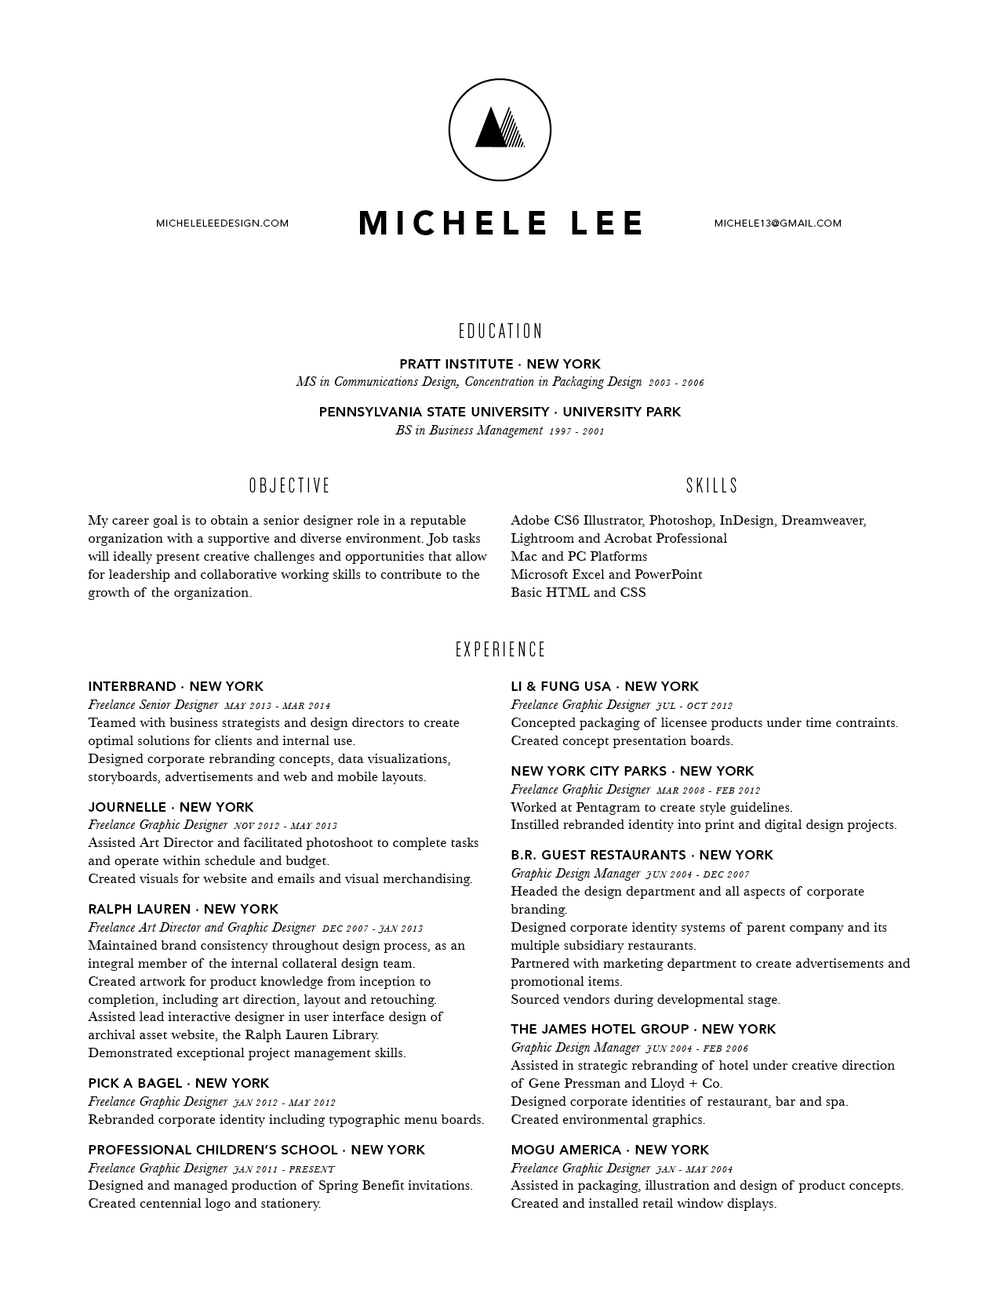 MicheleLee_resume_March2014.jpg